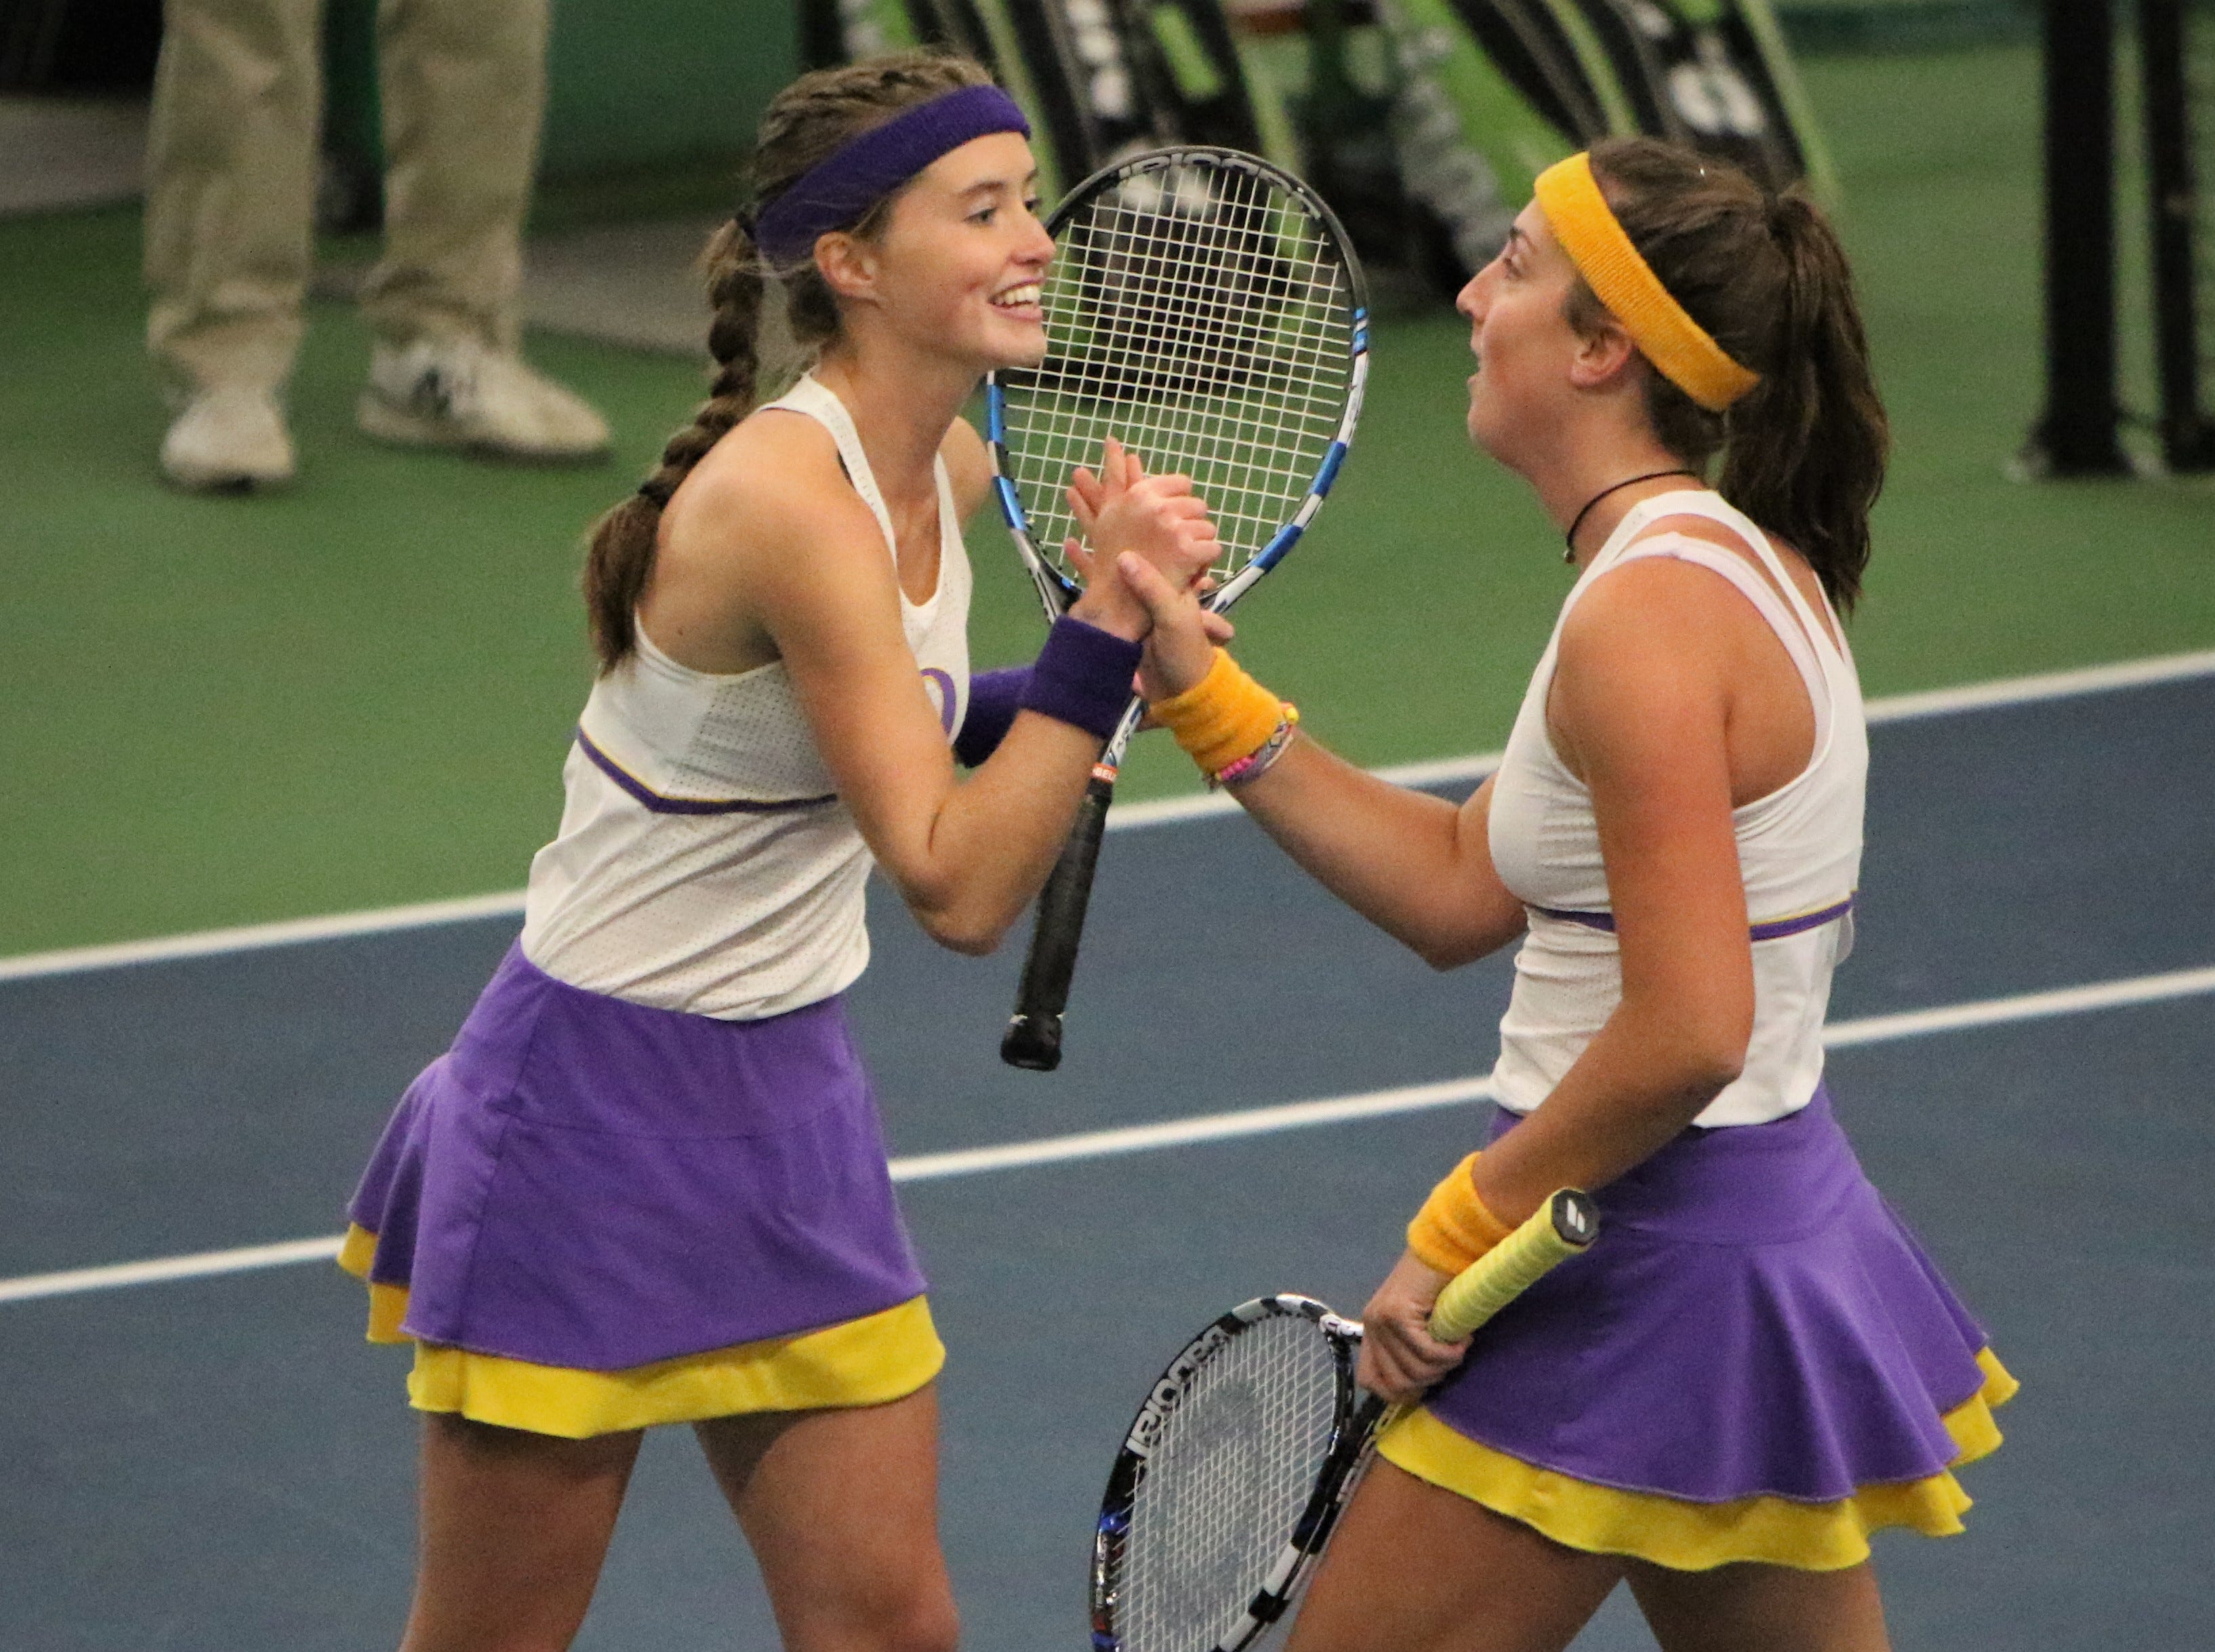 Oconomowoc's doubles team of Tori Krcmarik and Carolyn Tuff celebrates a point during a match at the WIAA state individual tennis tournament on Oct. 11.